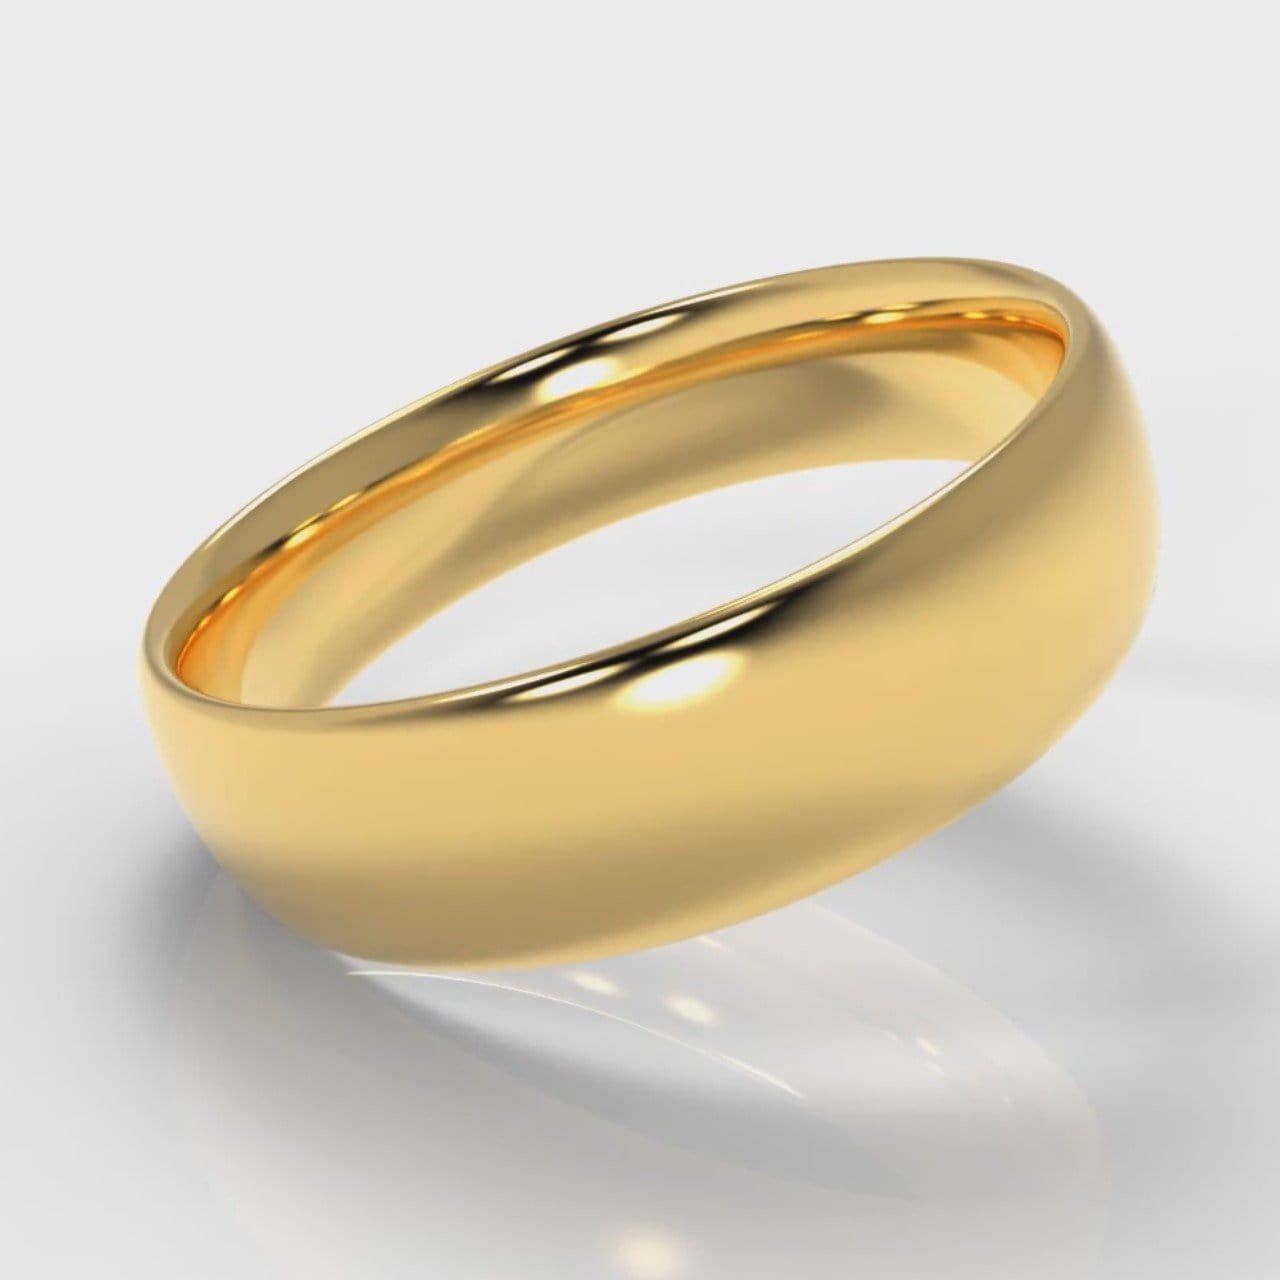 6mm Court Shaped Comfort Fit Wedding Ring - Yellow Gold